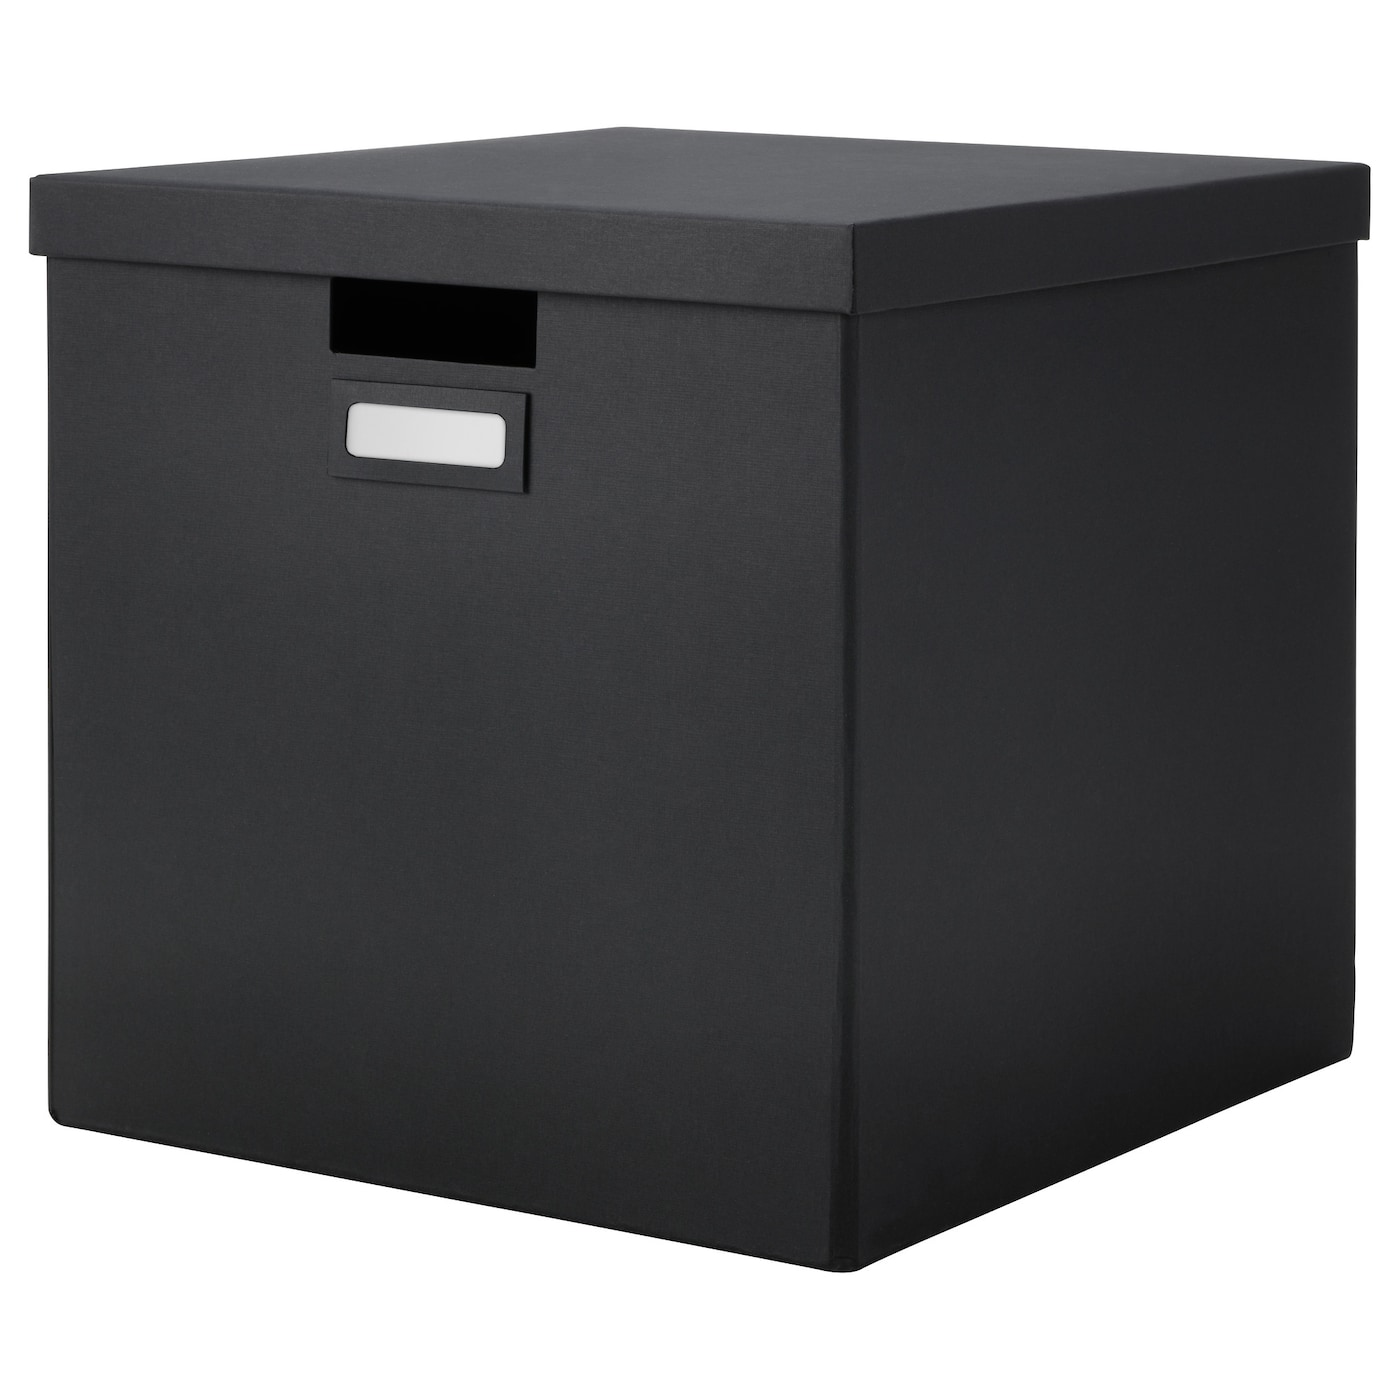 tjena box with lid black 32x35x32 cm ikea. Black Bedroom Furniture Sets. Home Design Ideas